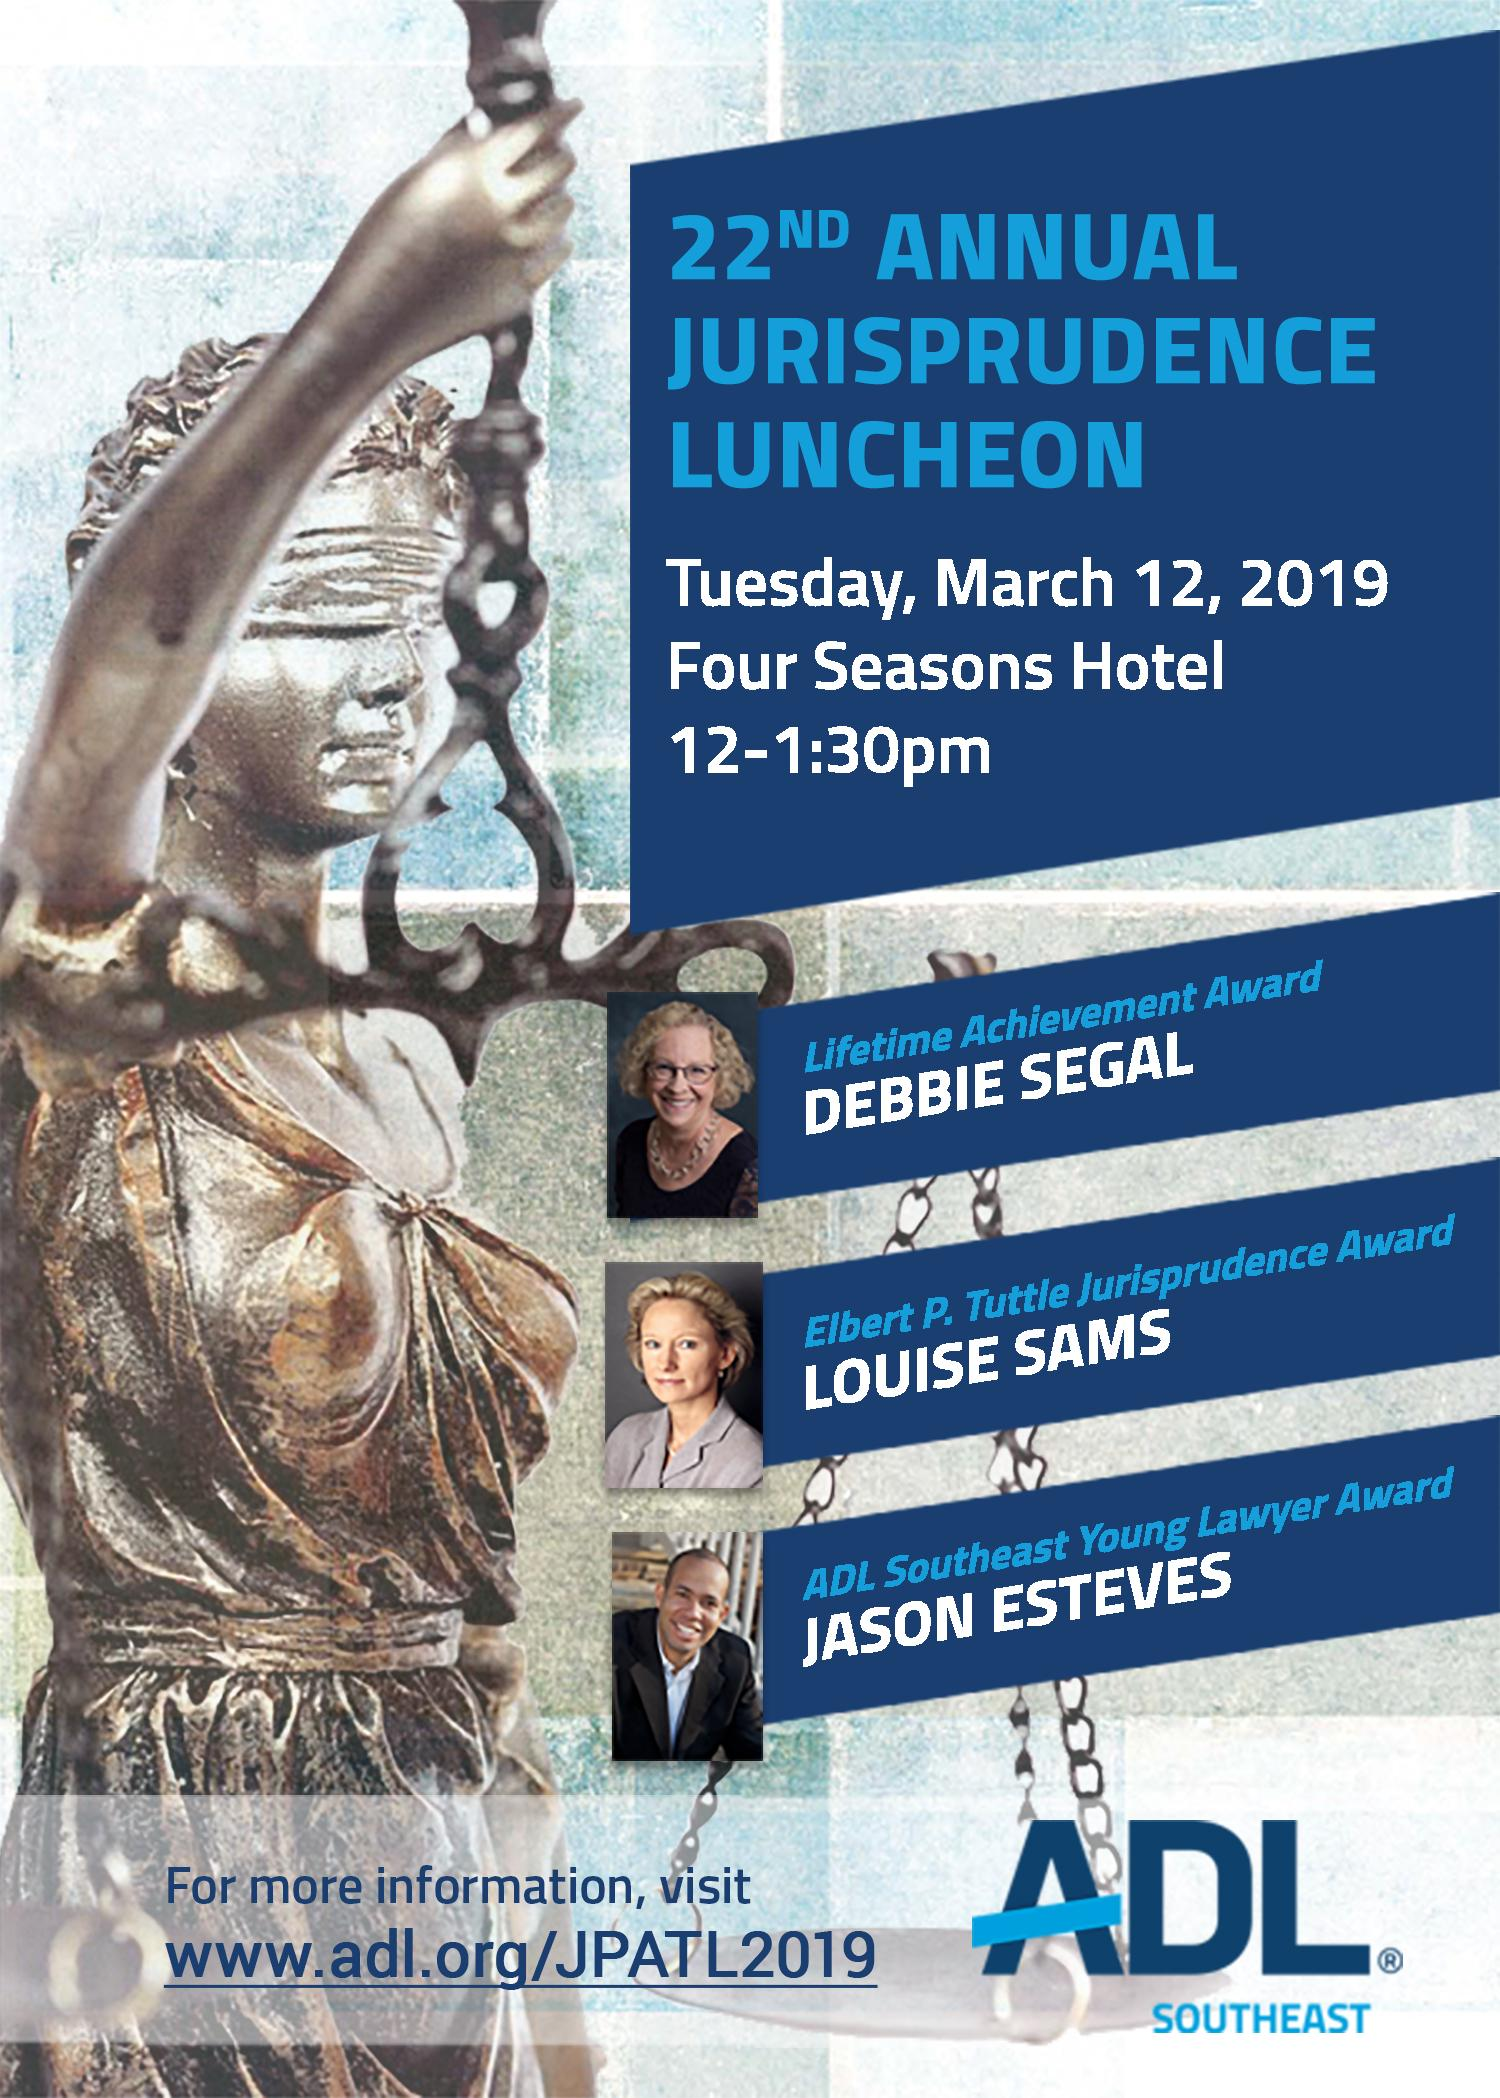 GlassRatner is a Proud Sponsor of the 22nd Annual ADL Southeast Jurisprudence Luncheon